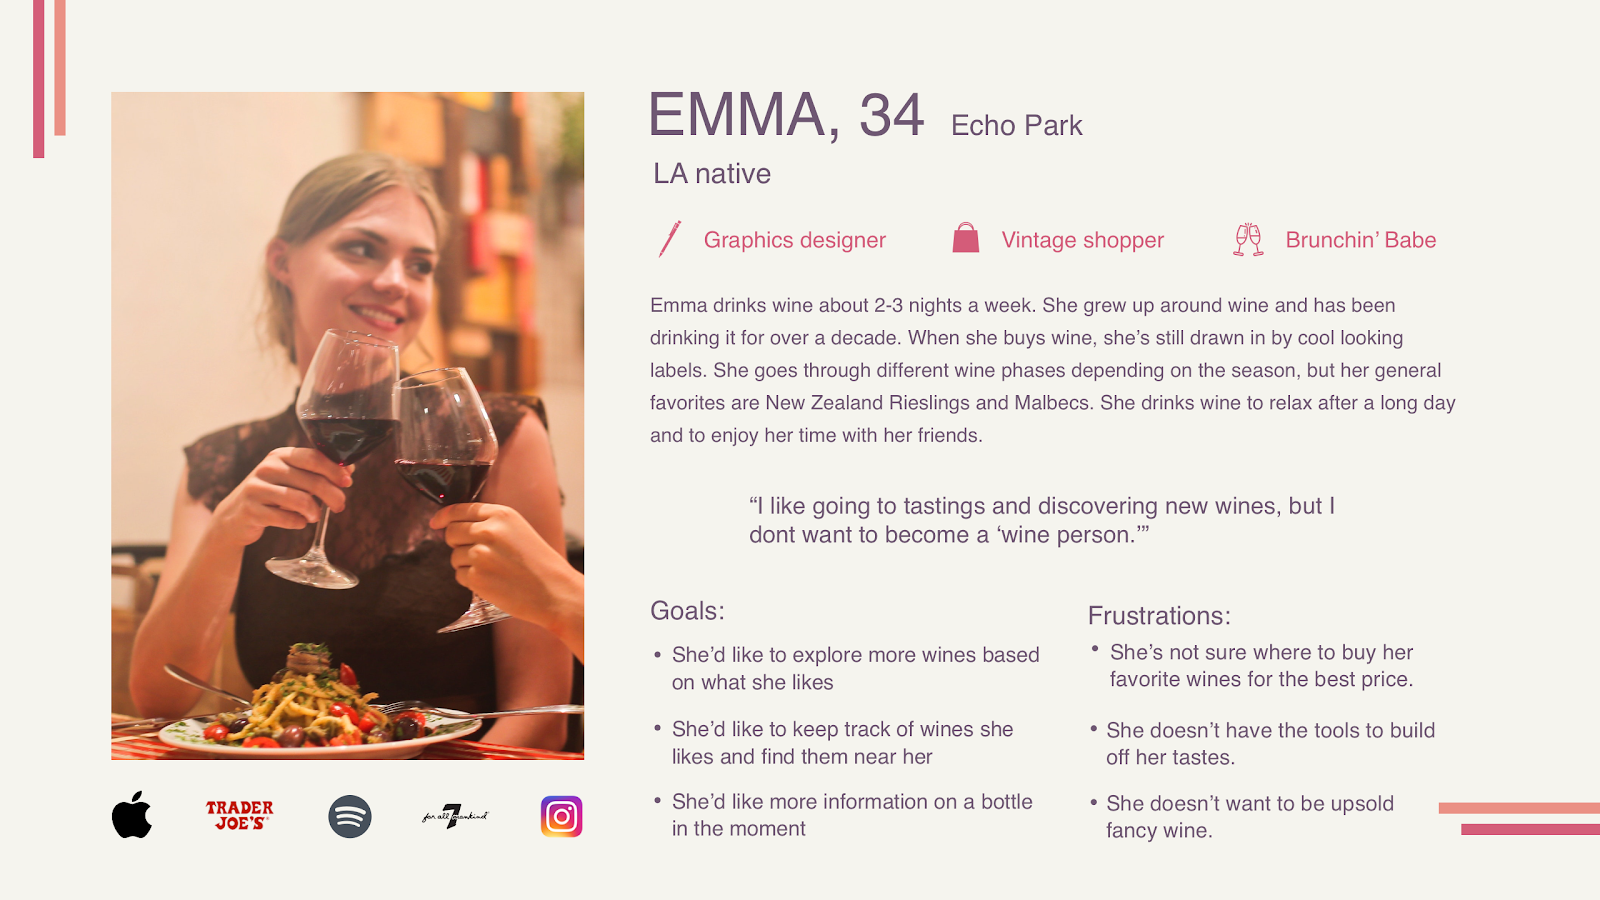 A sample user persona for a graphic designer named Emma, built out in the process of creating an experience map.